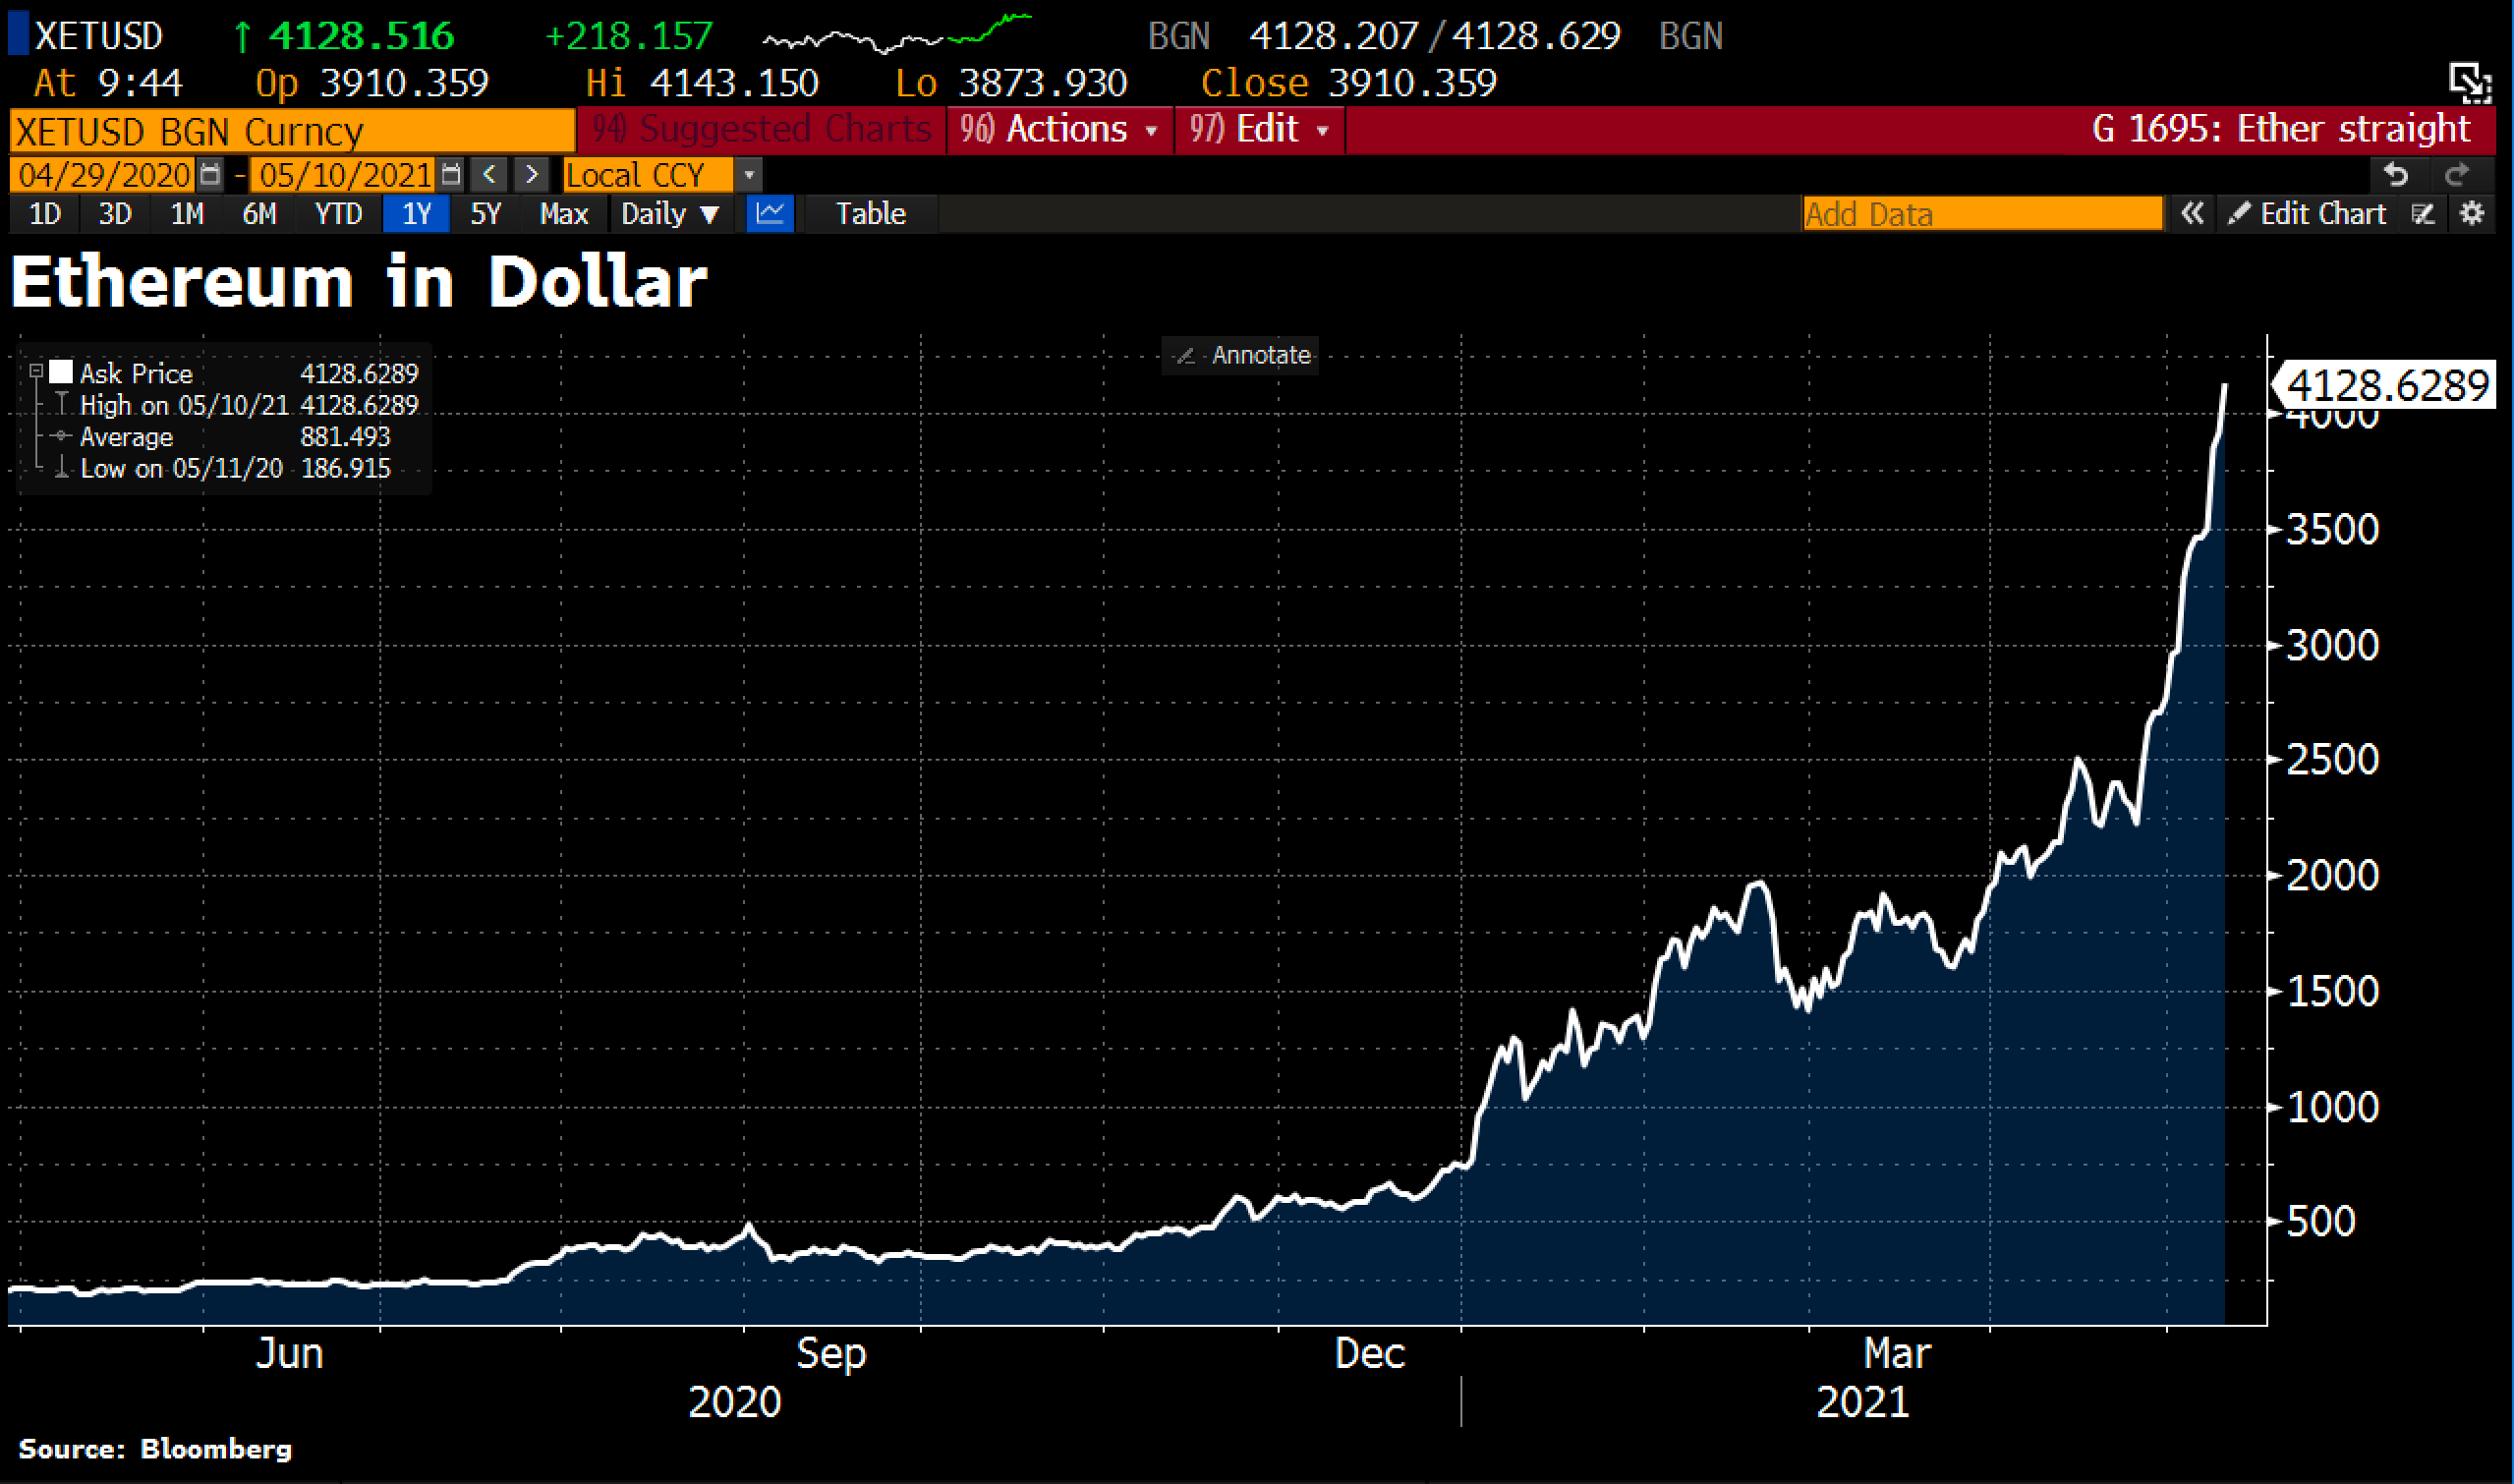 Ethereum new all-time highs © Holger Zschaepitz via Twitter @Schuldensuehner, May 10, 2021. Bitcoin - Caution, the crypto sector is getting a bit overheated in the short-term.